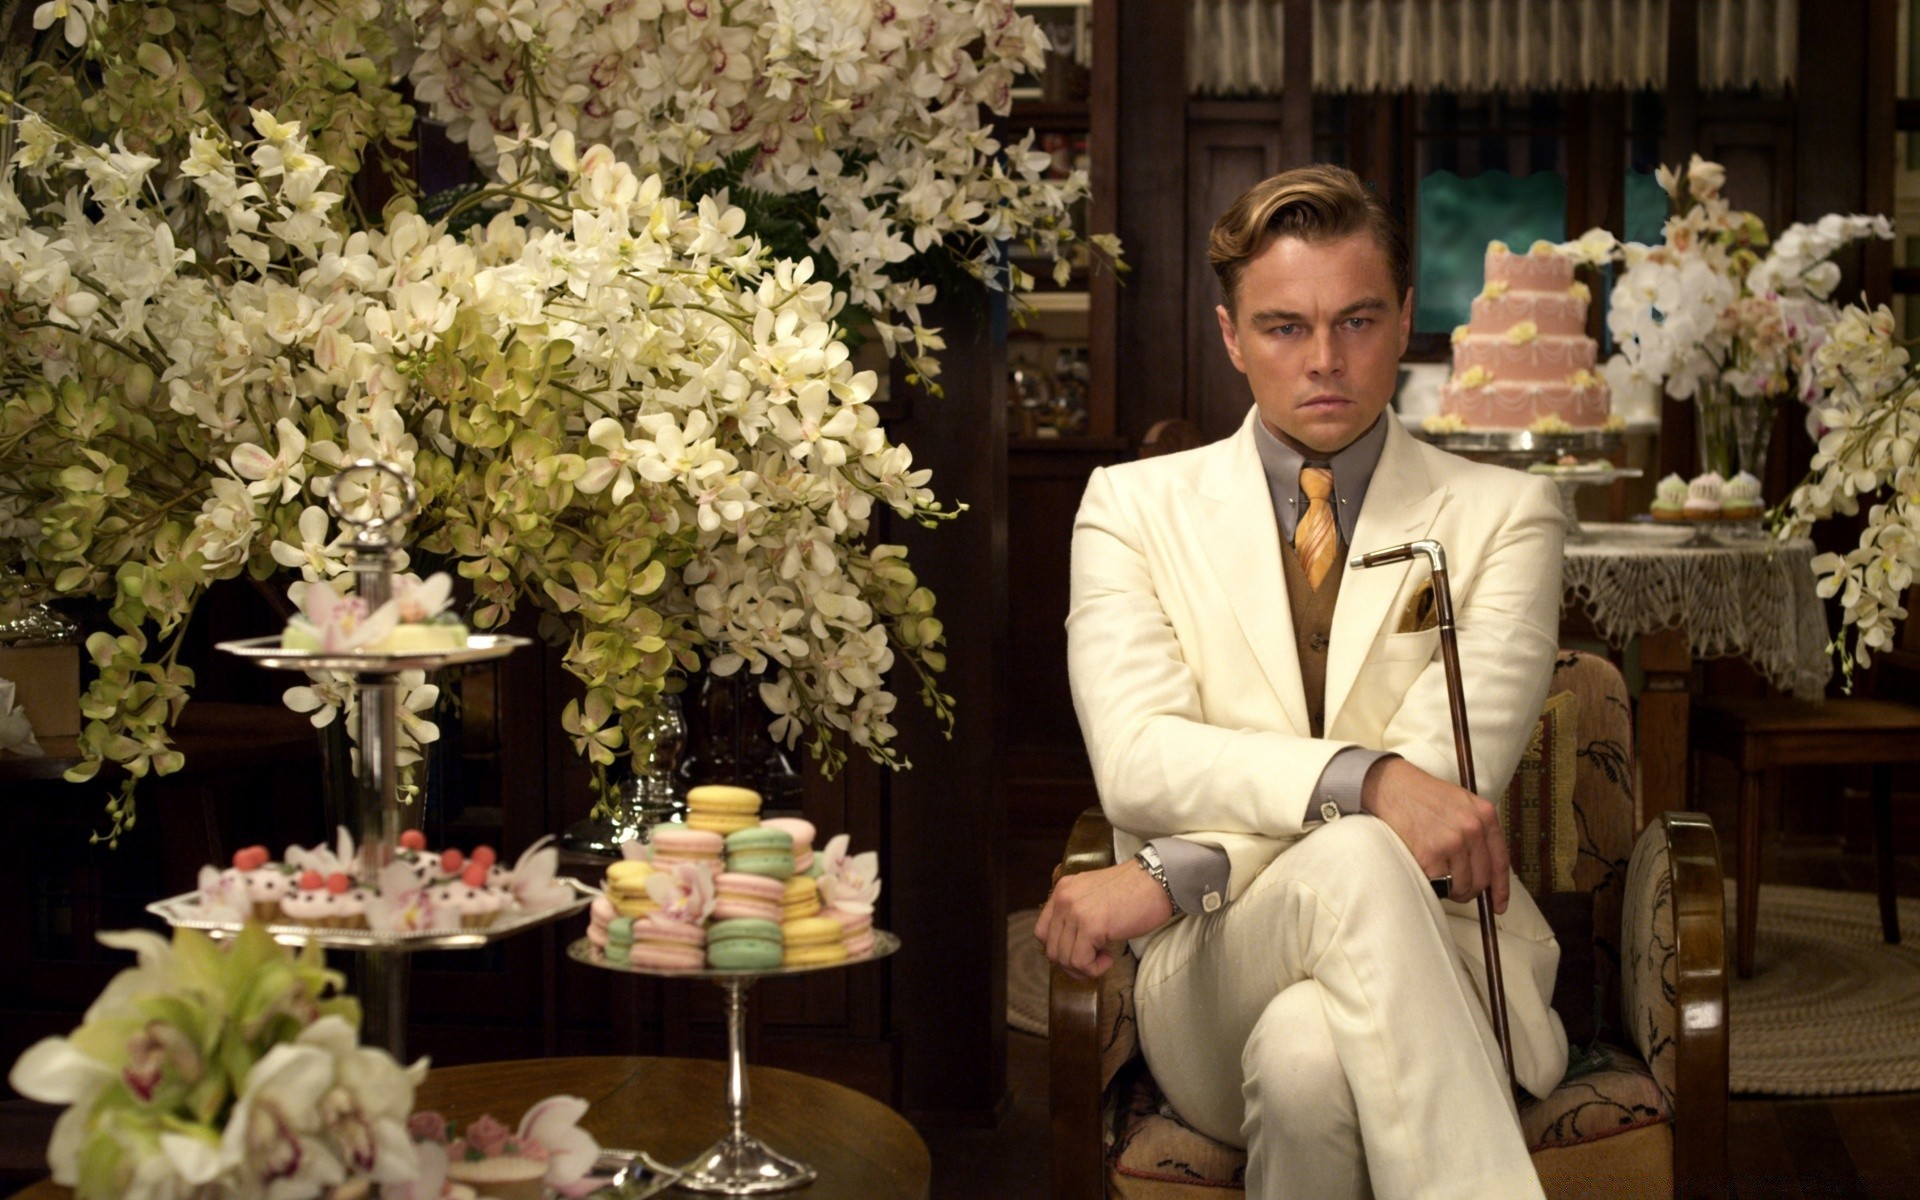 jay gatsbys material possessions ultimately do not help him achieve his dream in the great gatsby by